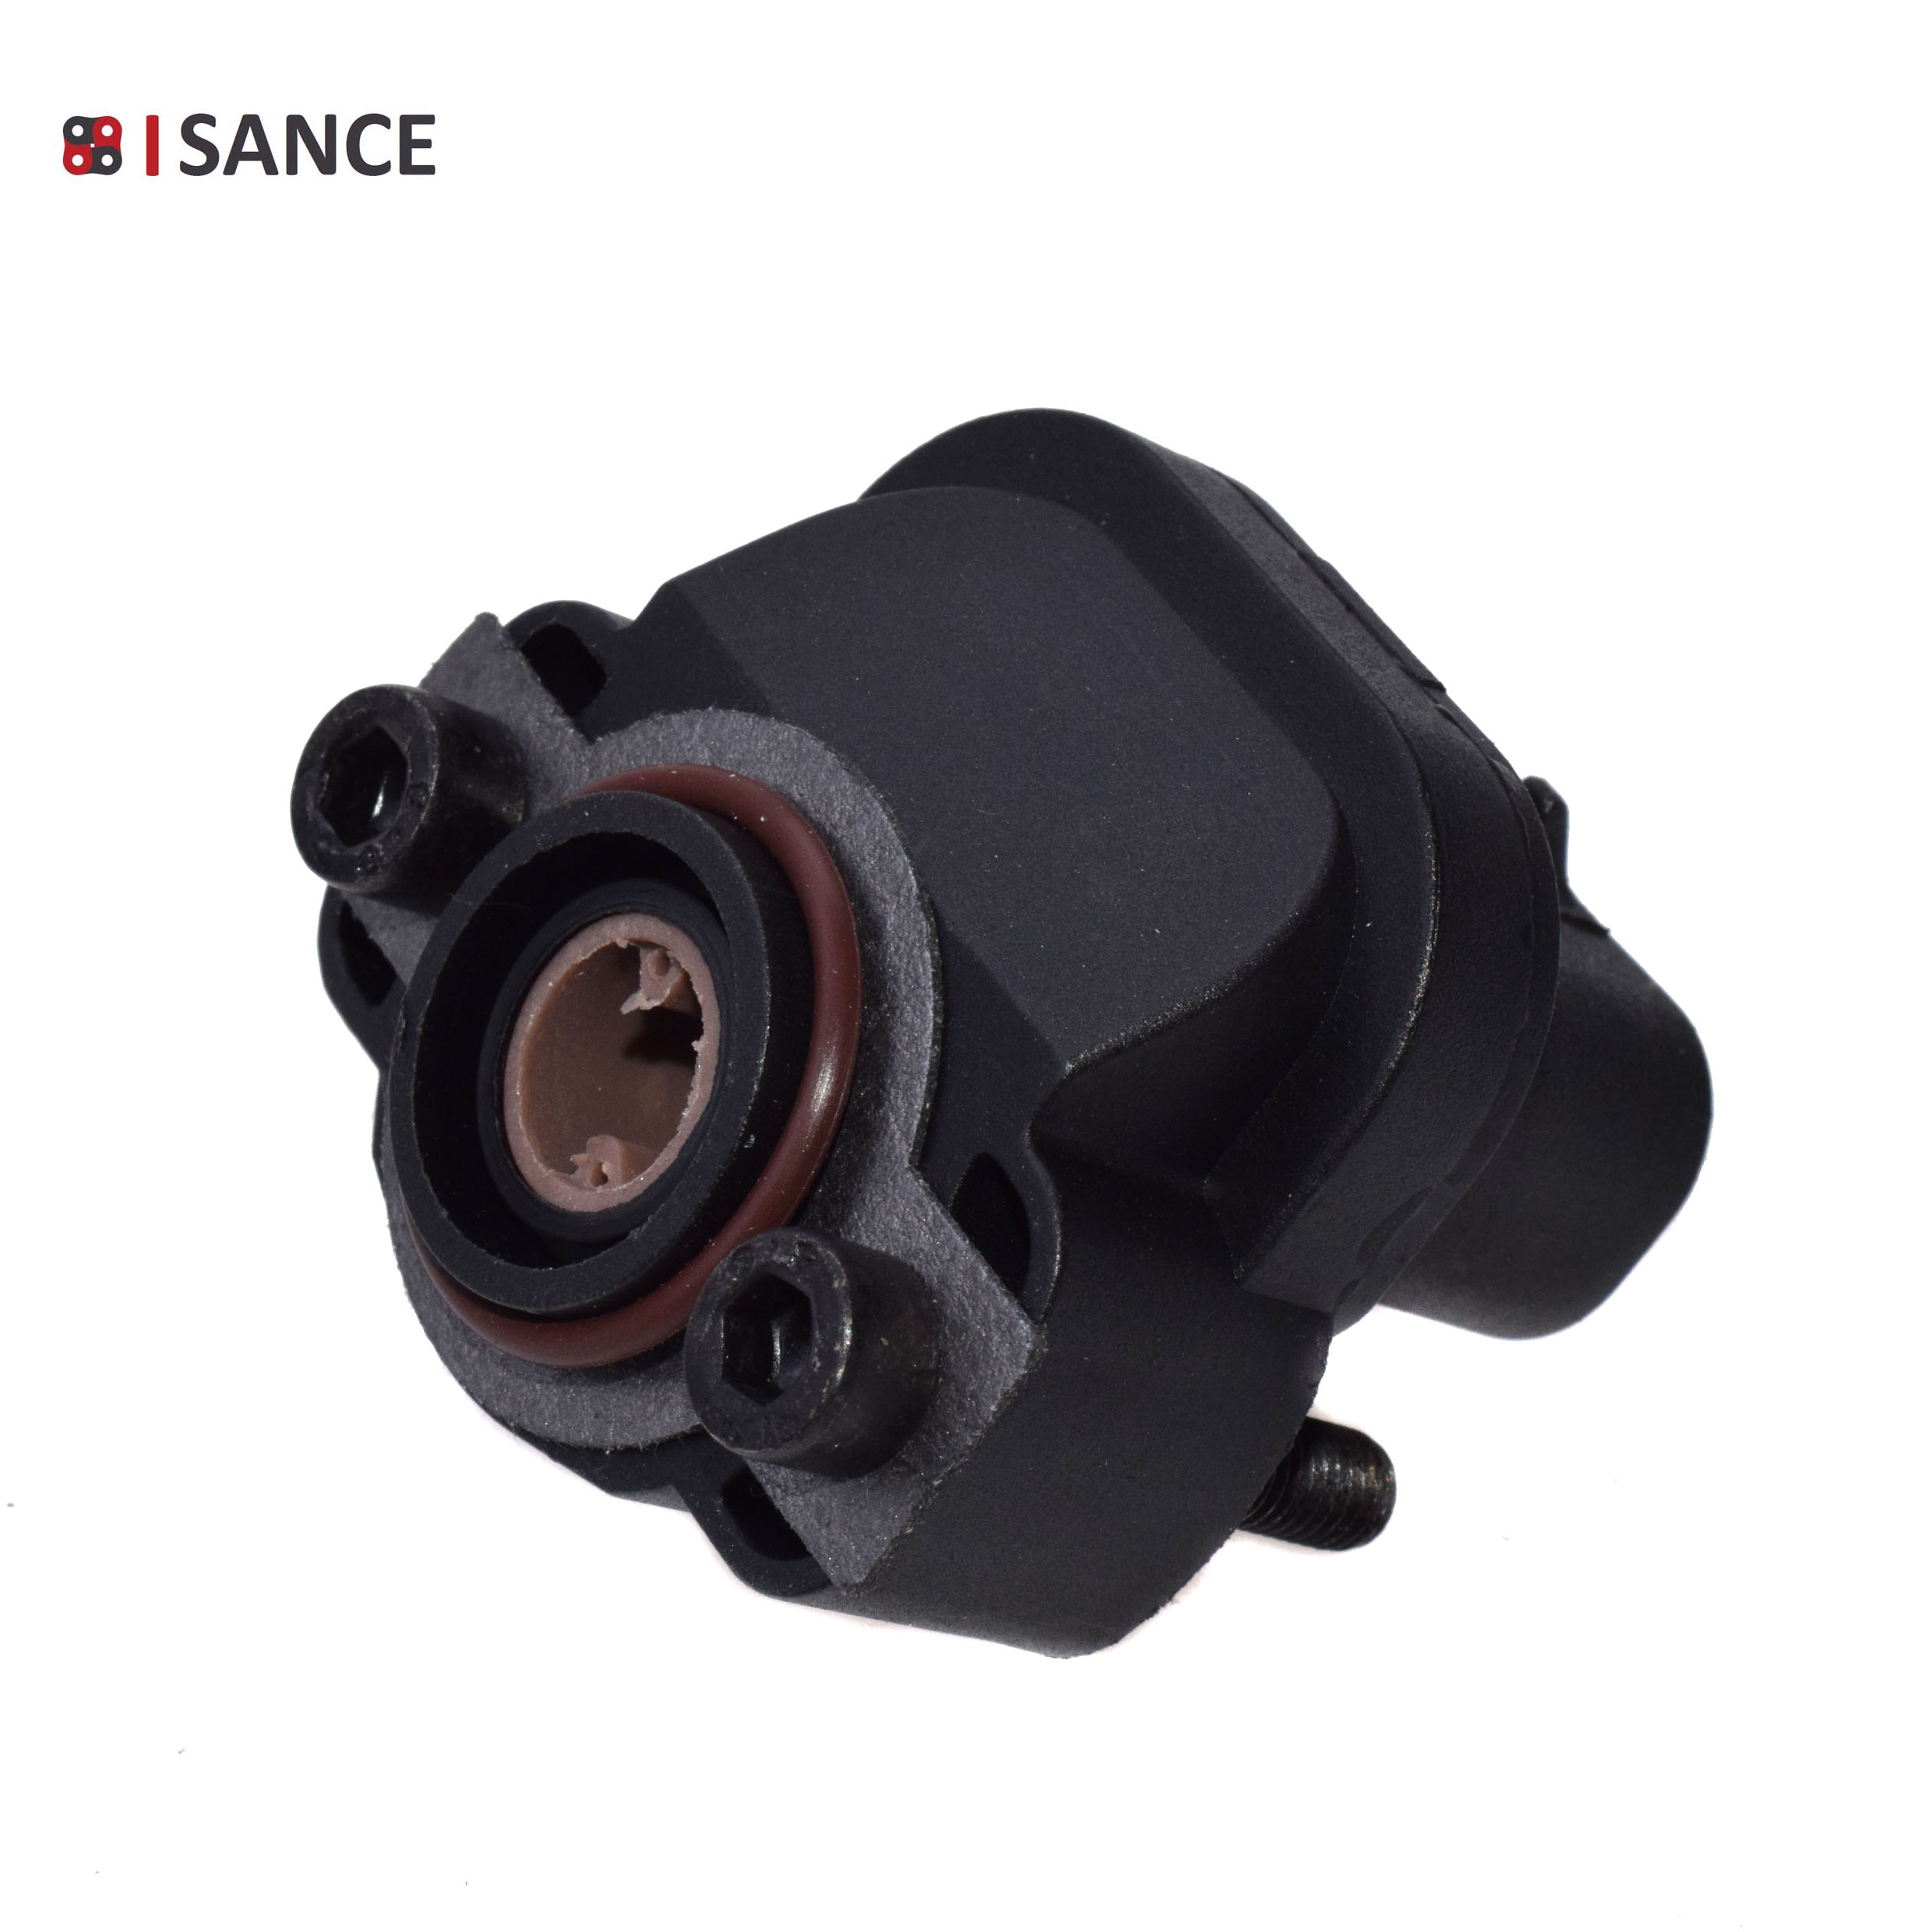 Throttle Position Sensor TPS 4761871 For Jeep Cherokee Wrangler Dakota Ram 1500